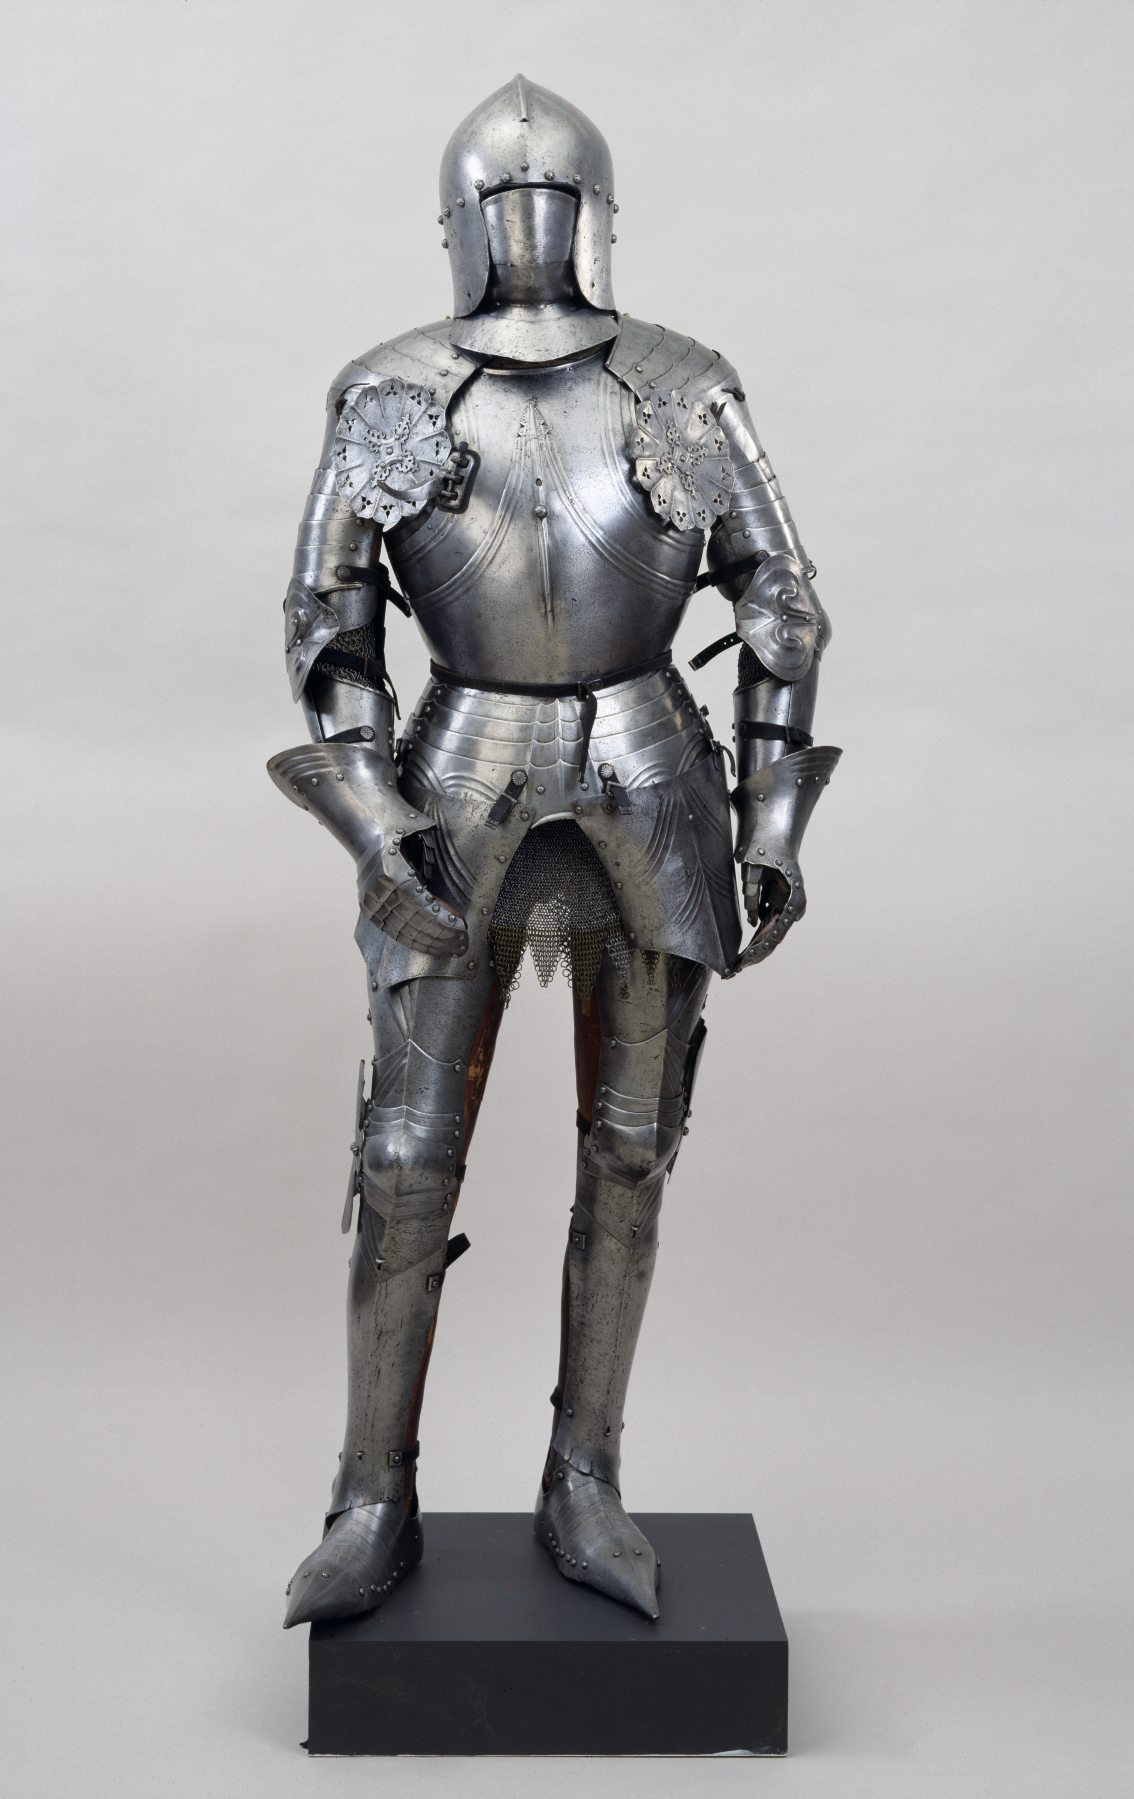 Renaissance Arms and Armor | Weapons and Warfare